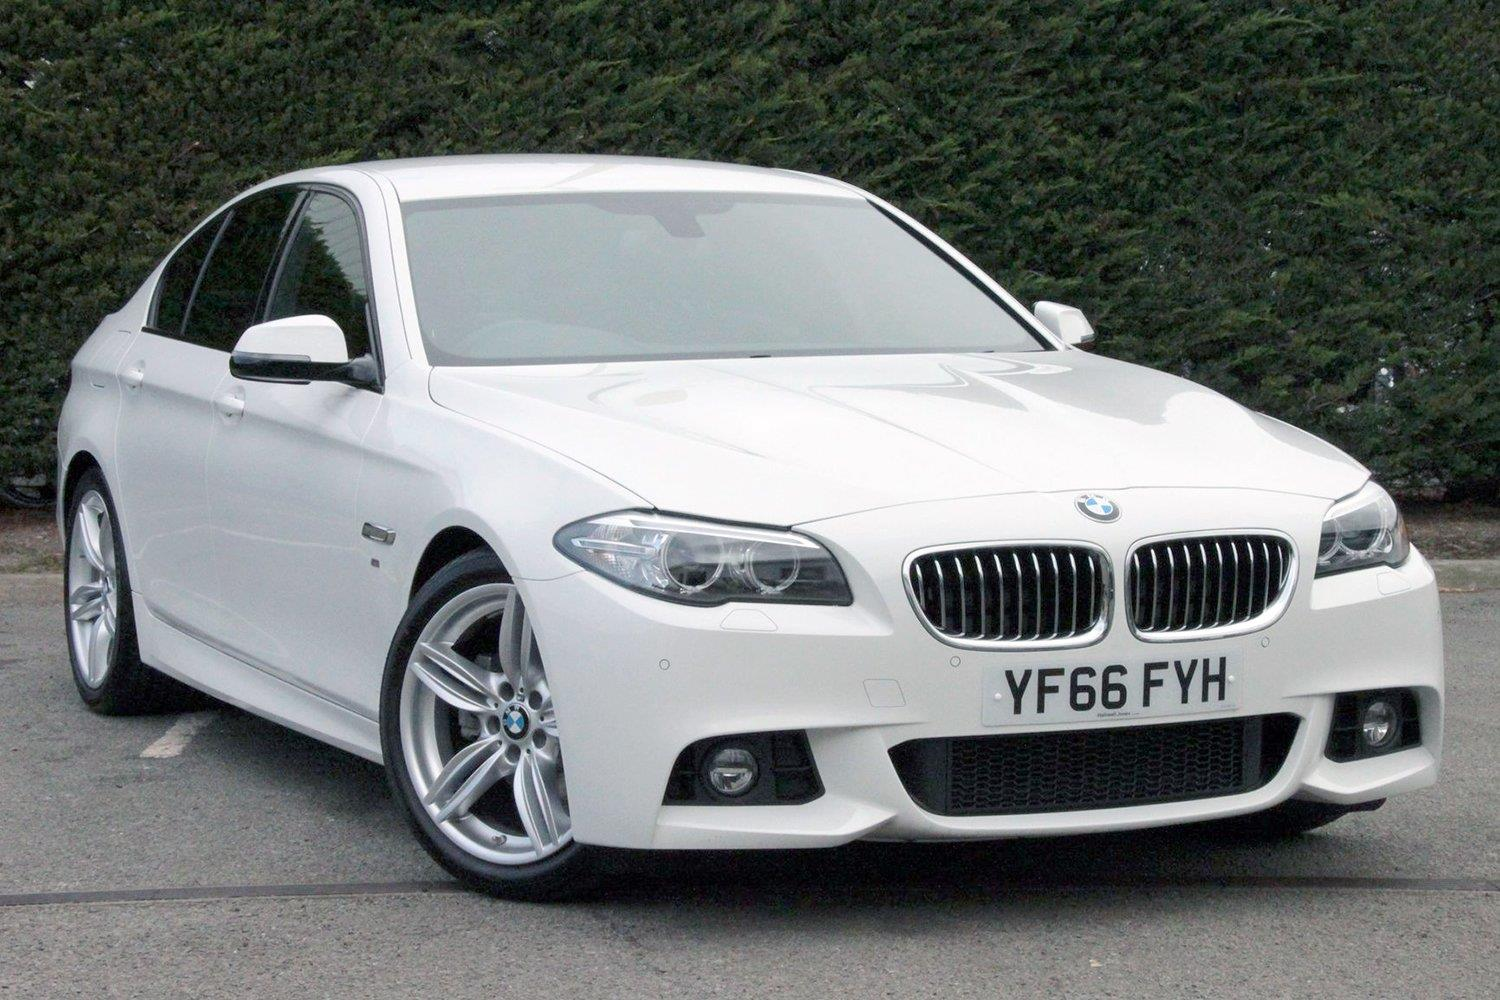 BMW 5 Series Saloon YF66FYH - Image 3